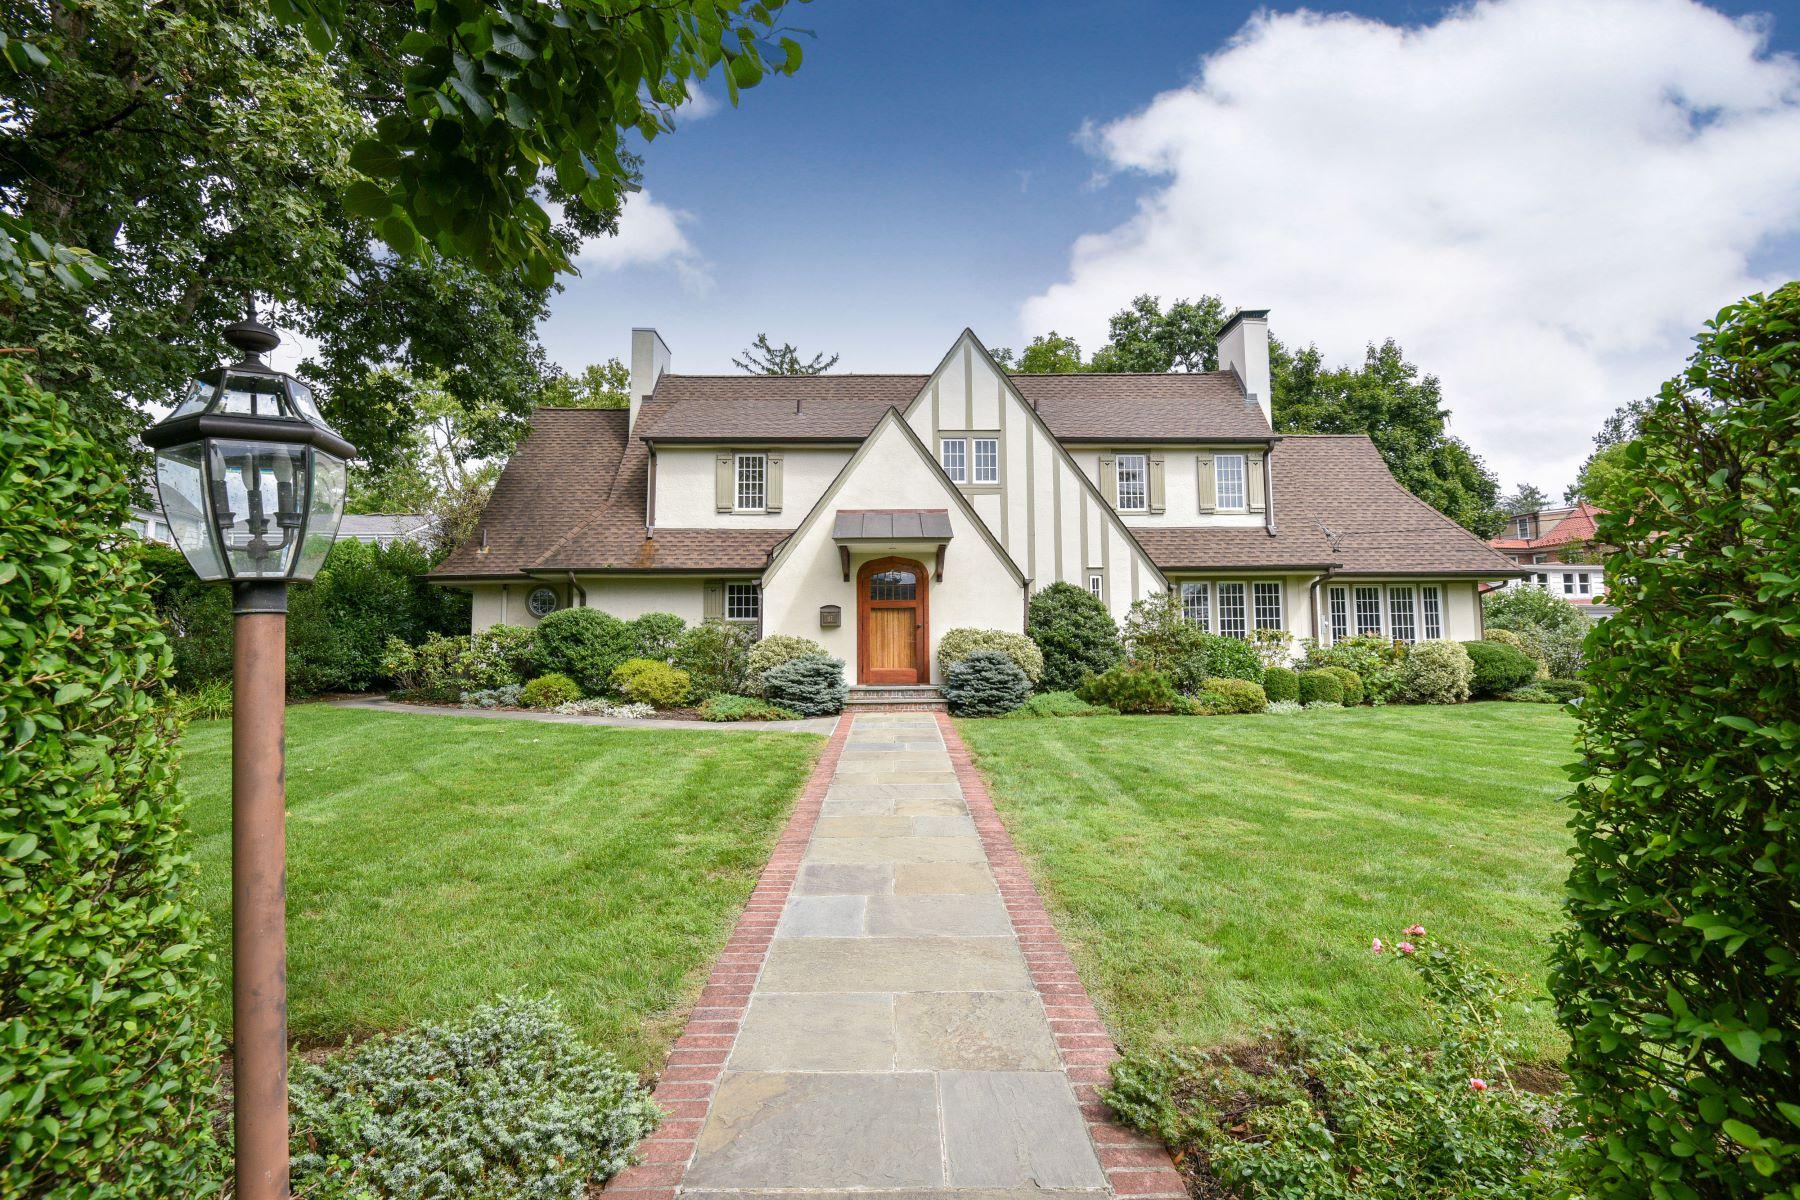 Single Family Home for Sale at 117 Beach Avenue 117 Beach Avenue Larchmont, New York 10538 United States